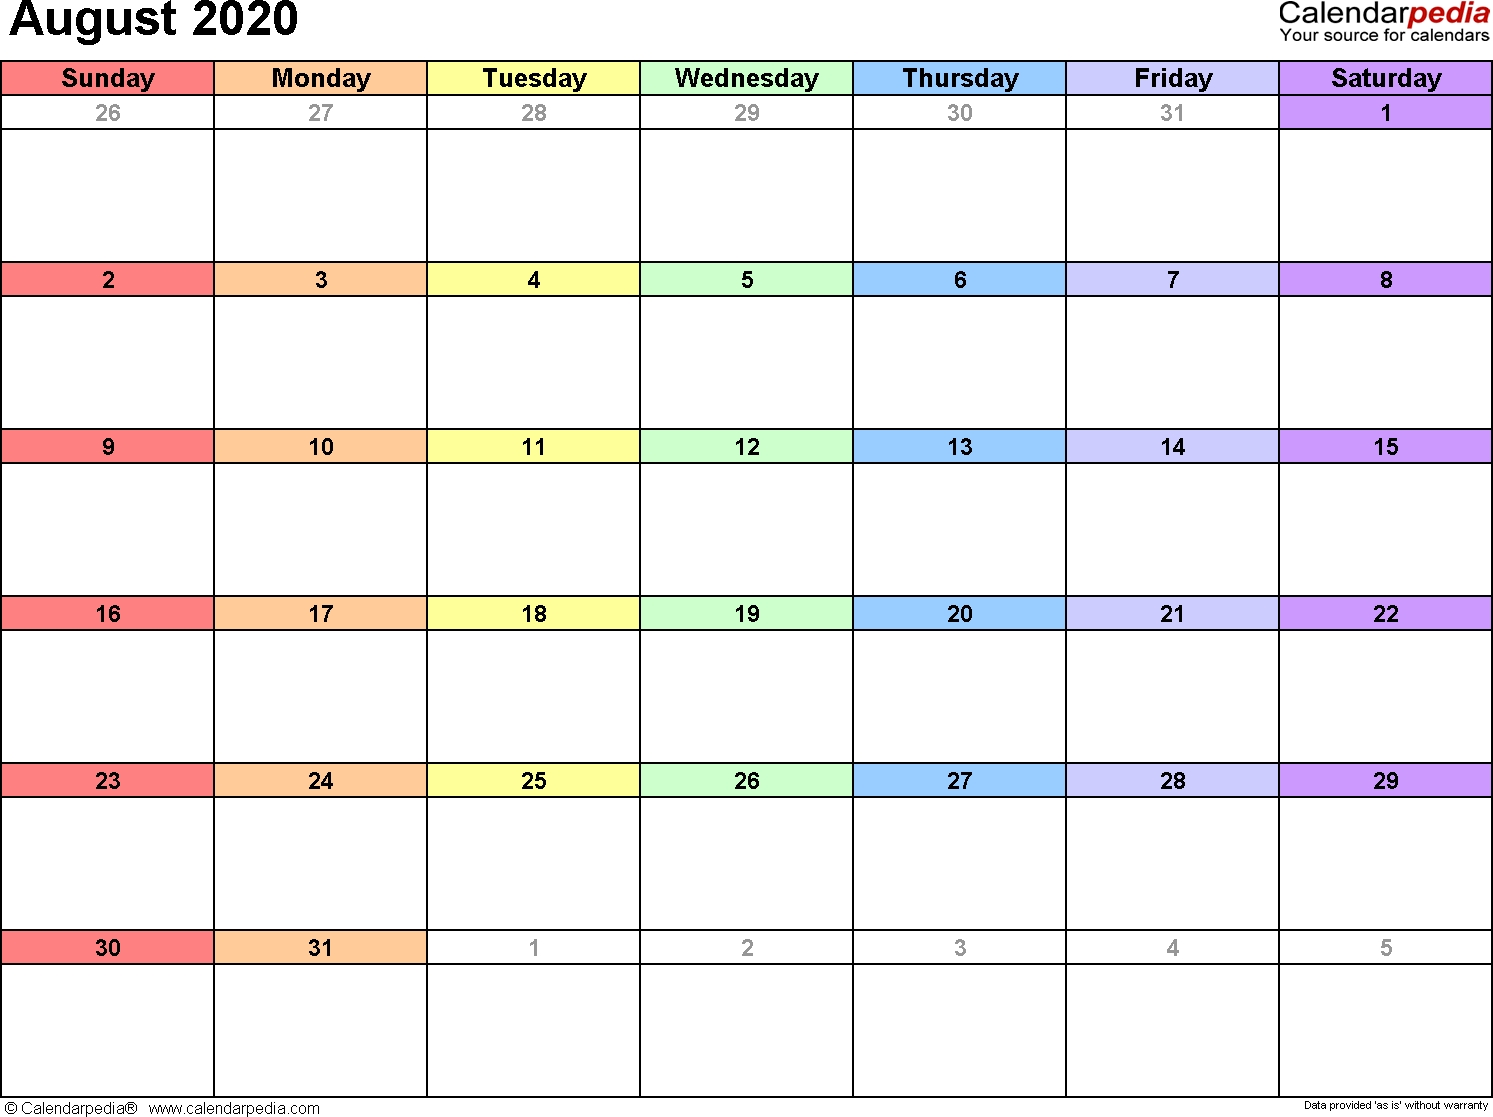 August 2020 Calendars For Word, Excel & Pdf-Calendar Template Fill In Aug 2020